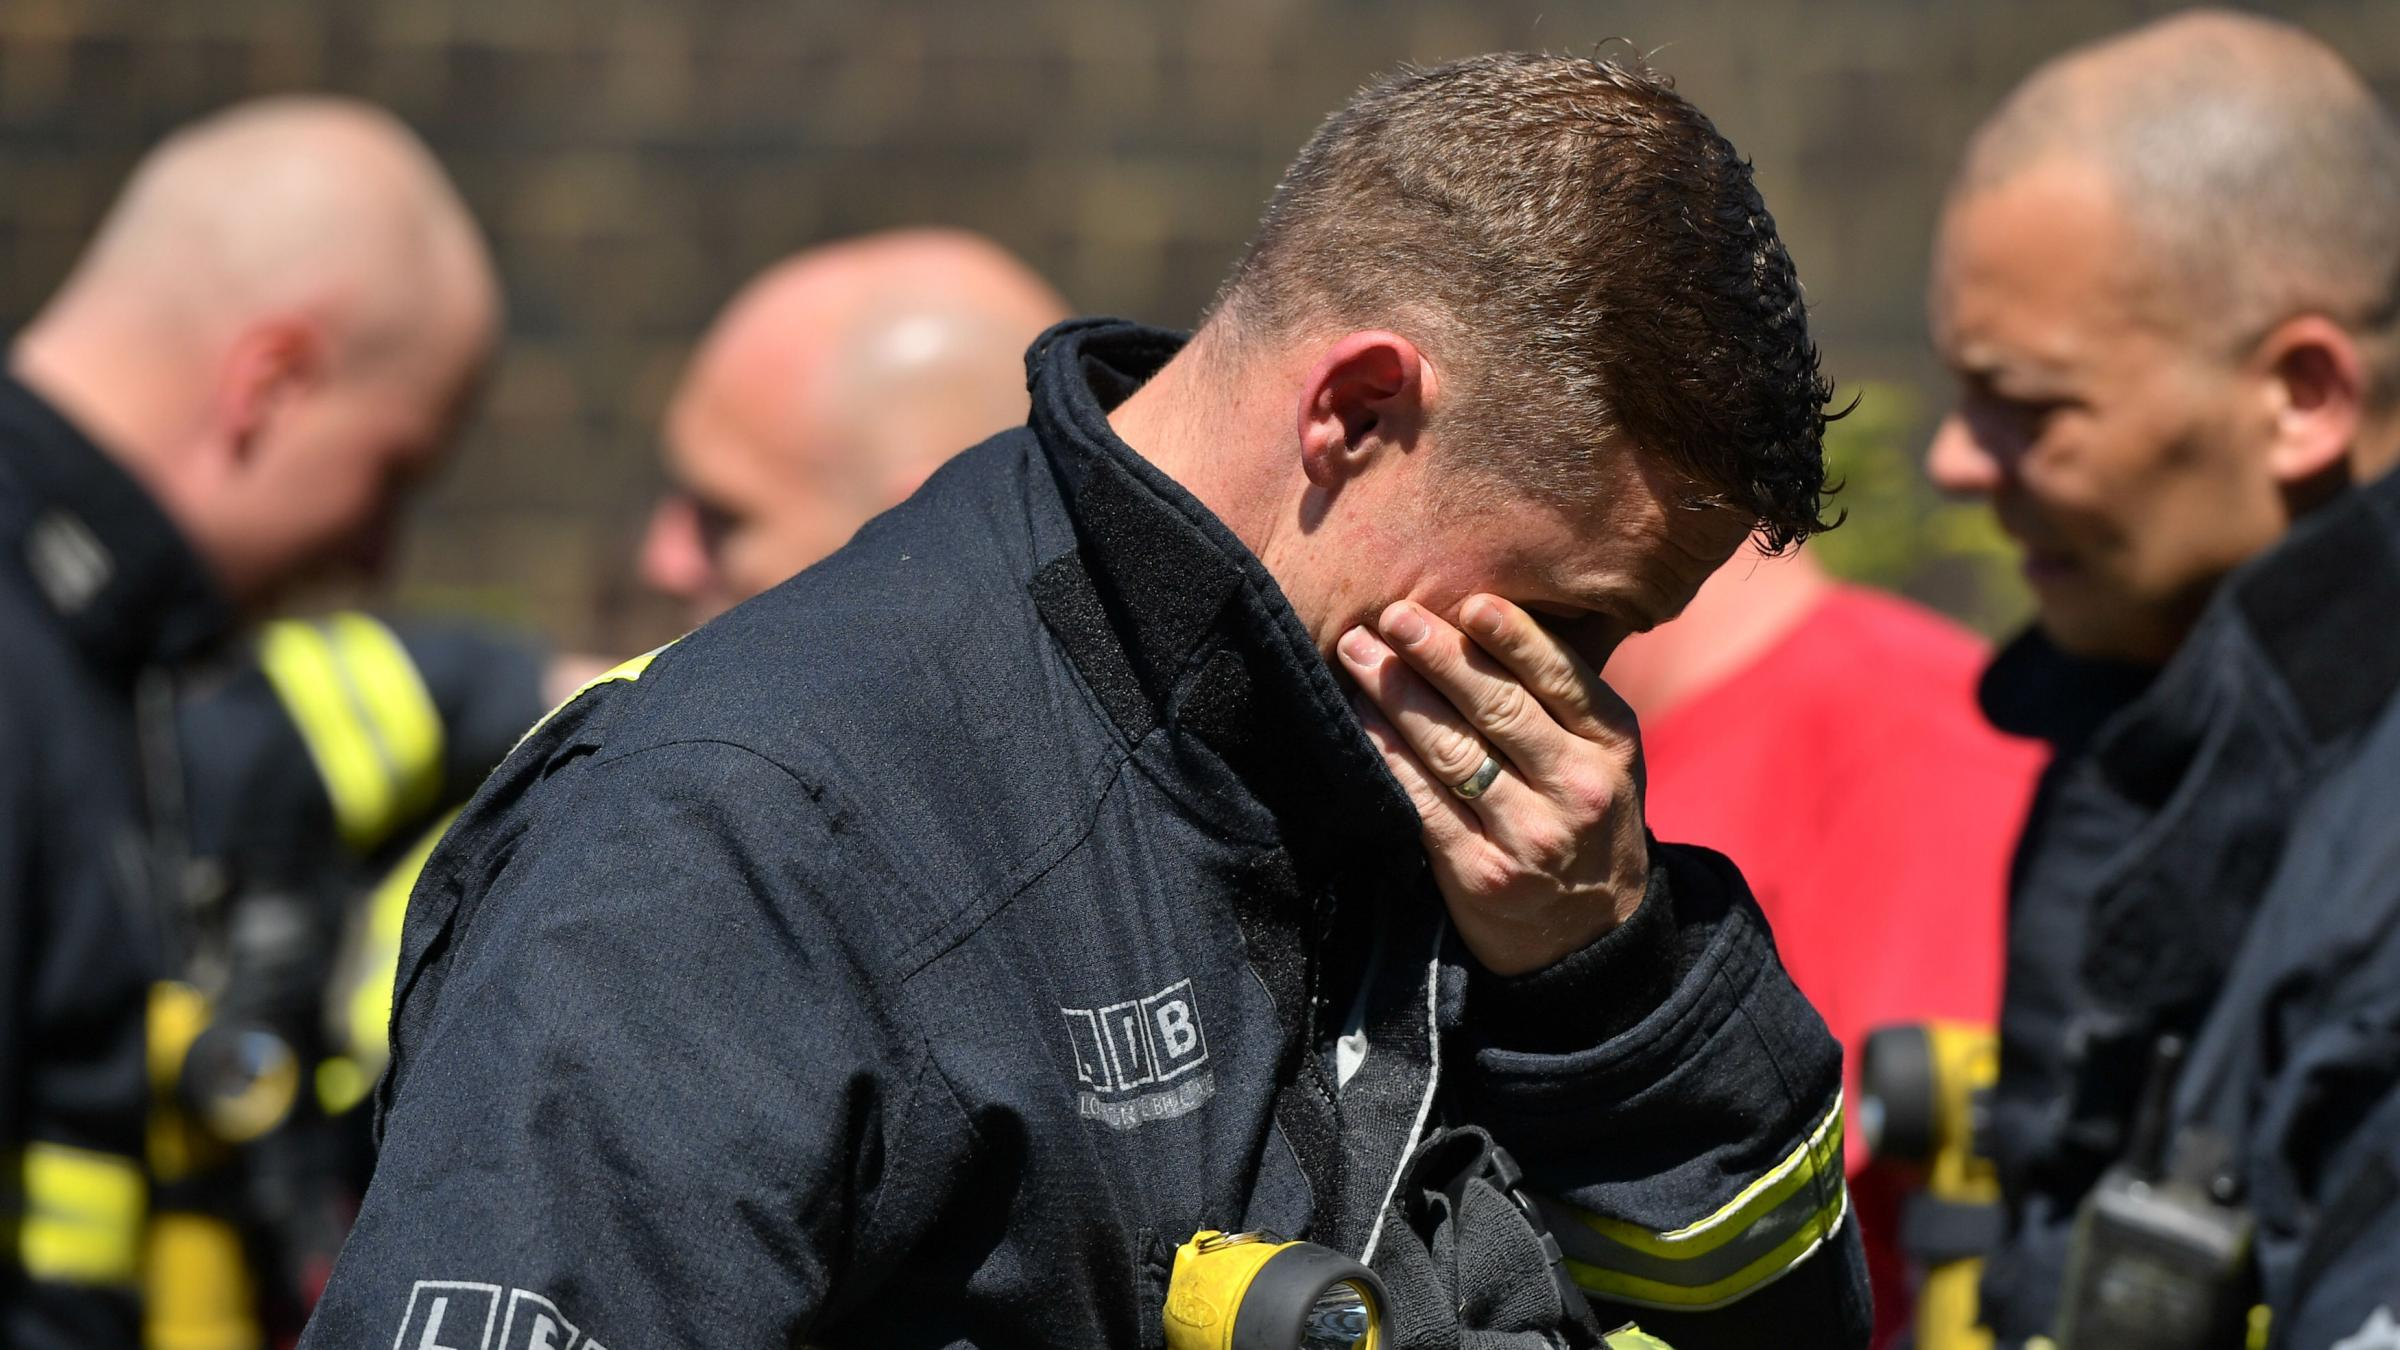 Death toll from London tower fire reaches 79: United Kingdom police